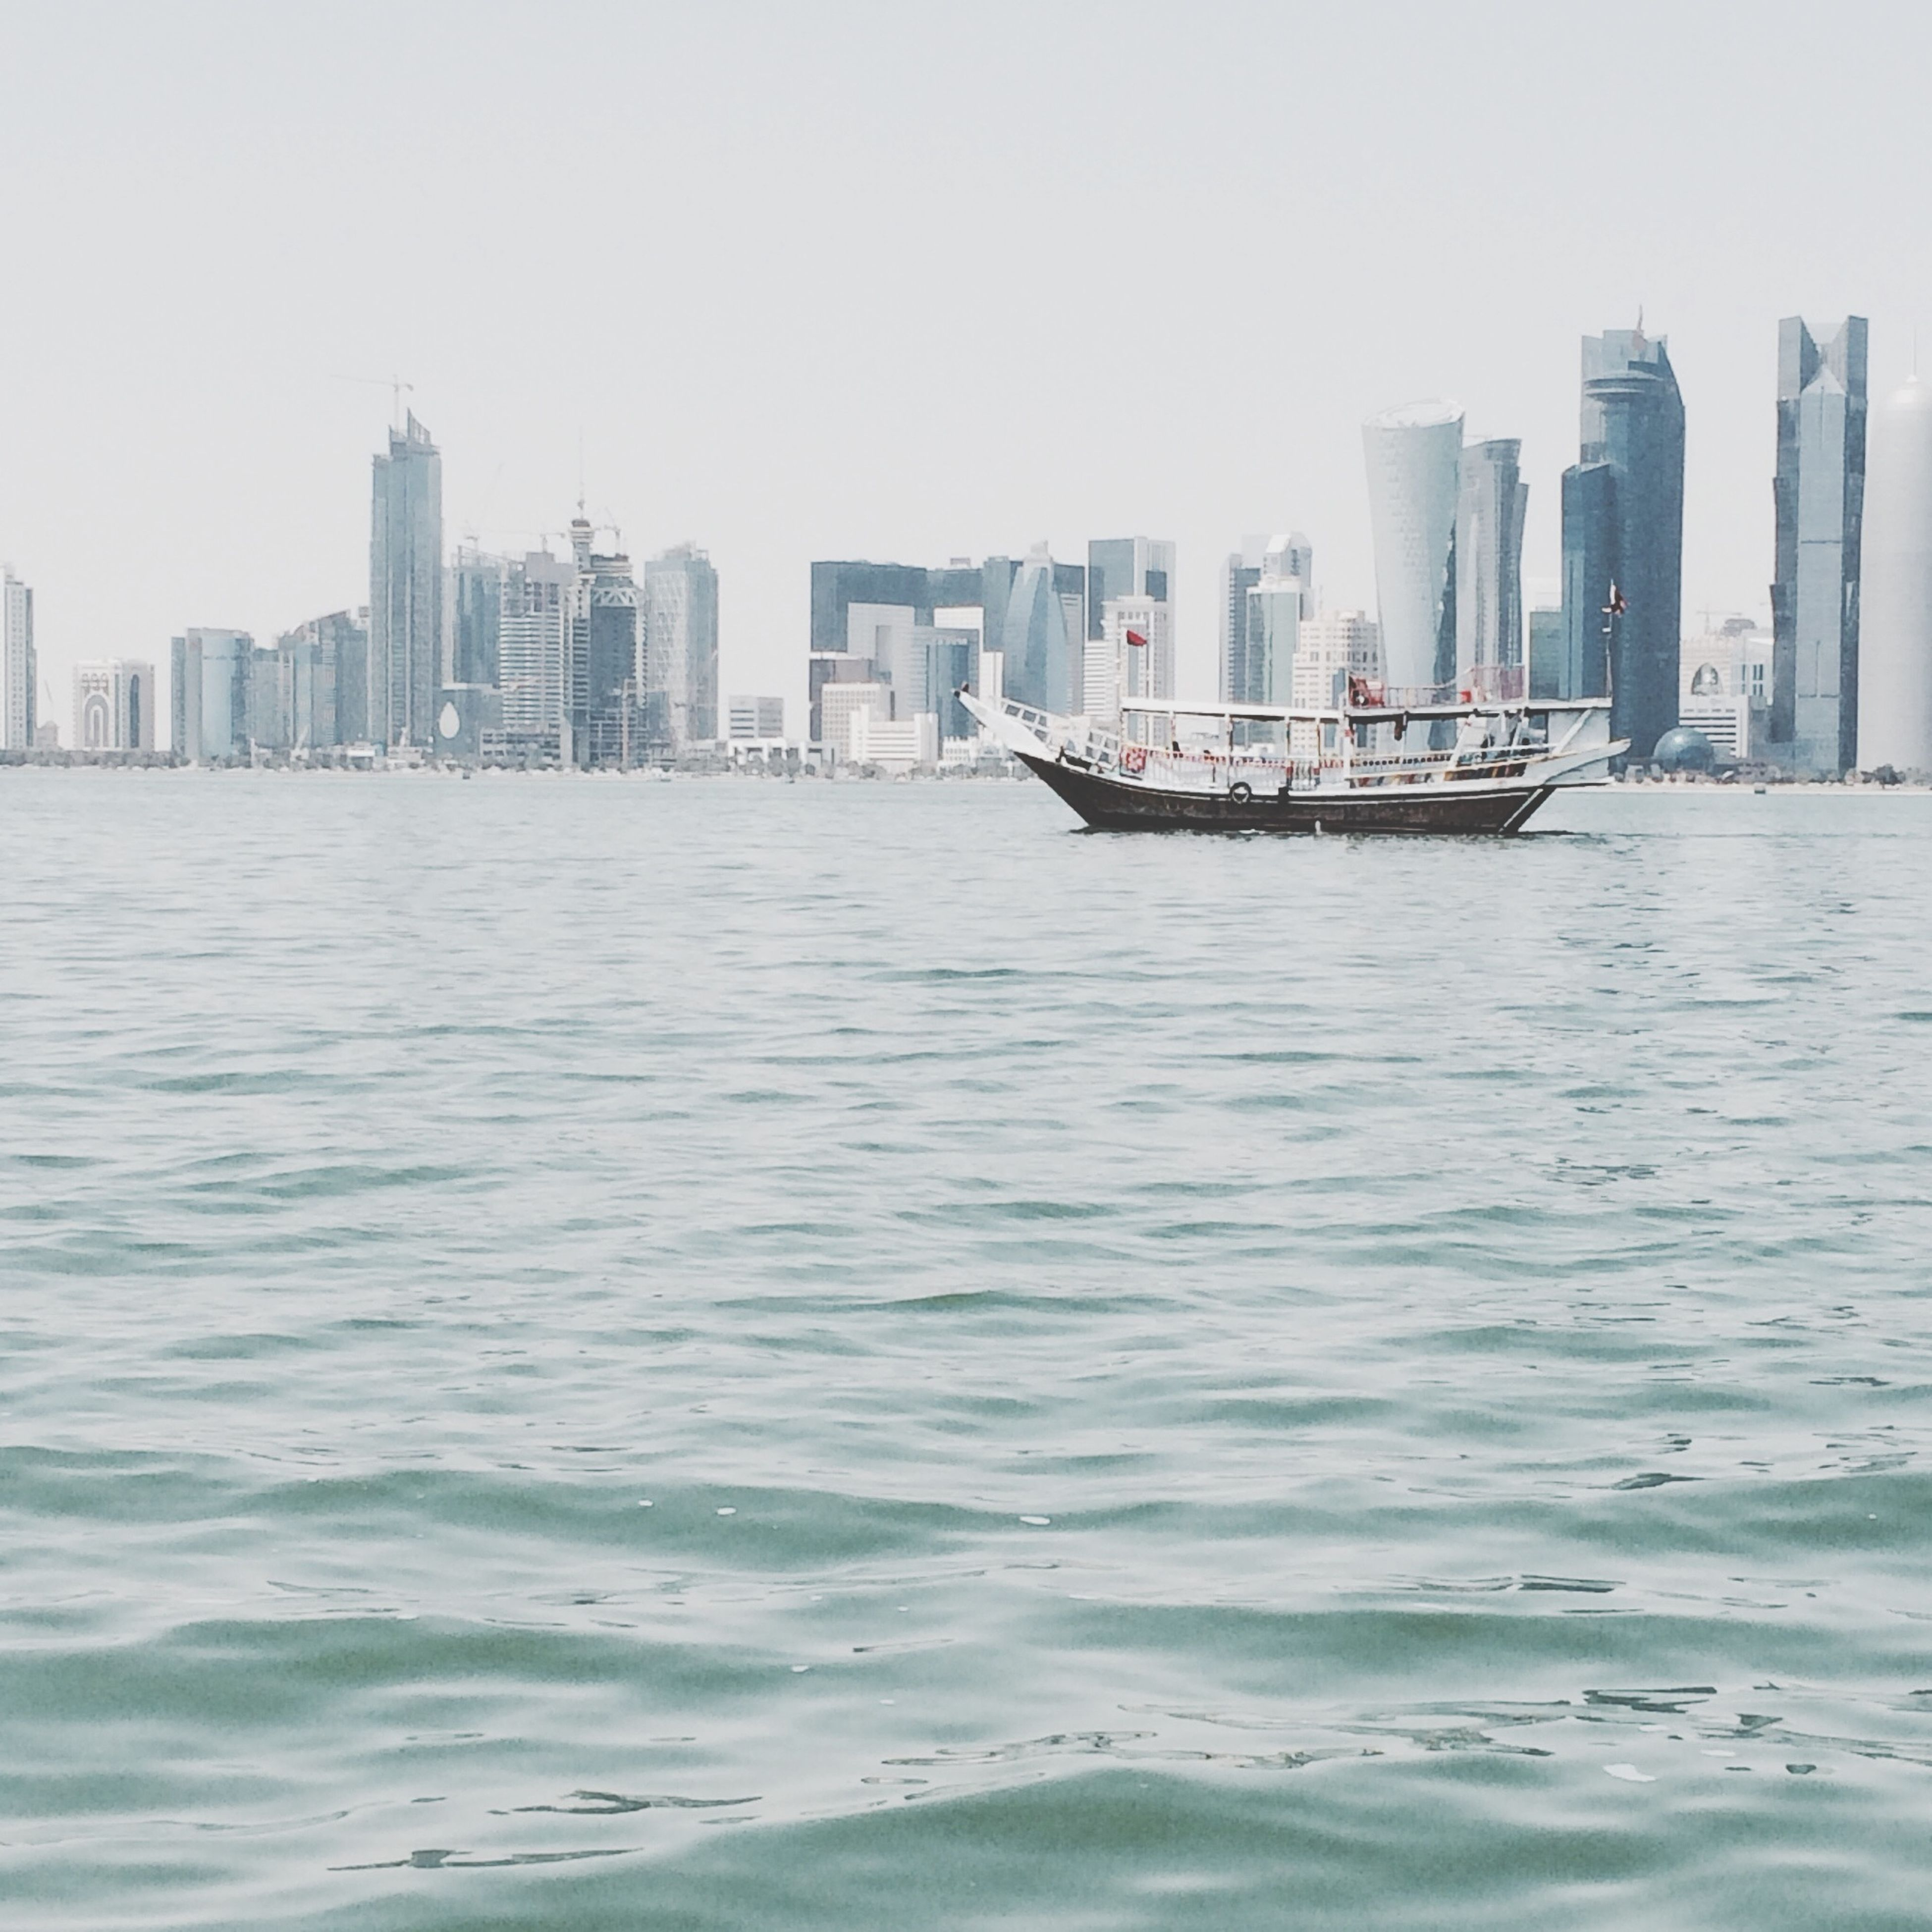 building exterior, city, architecture, skyscraper, water, built structure, waterfront, clear sky, urban skyline, tall - high, modern, cityscape, sea, office building, tower, river, skyline, copy space, nautical vessel, city life